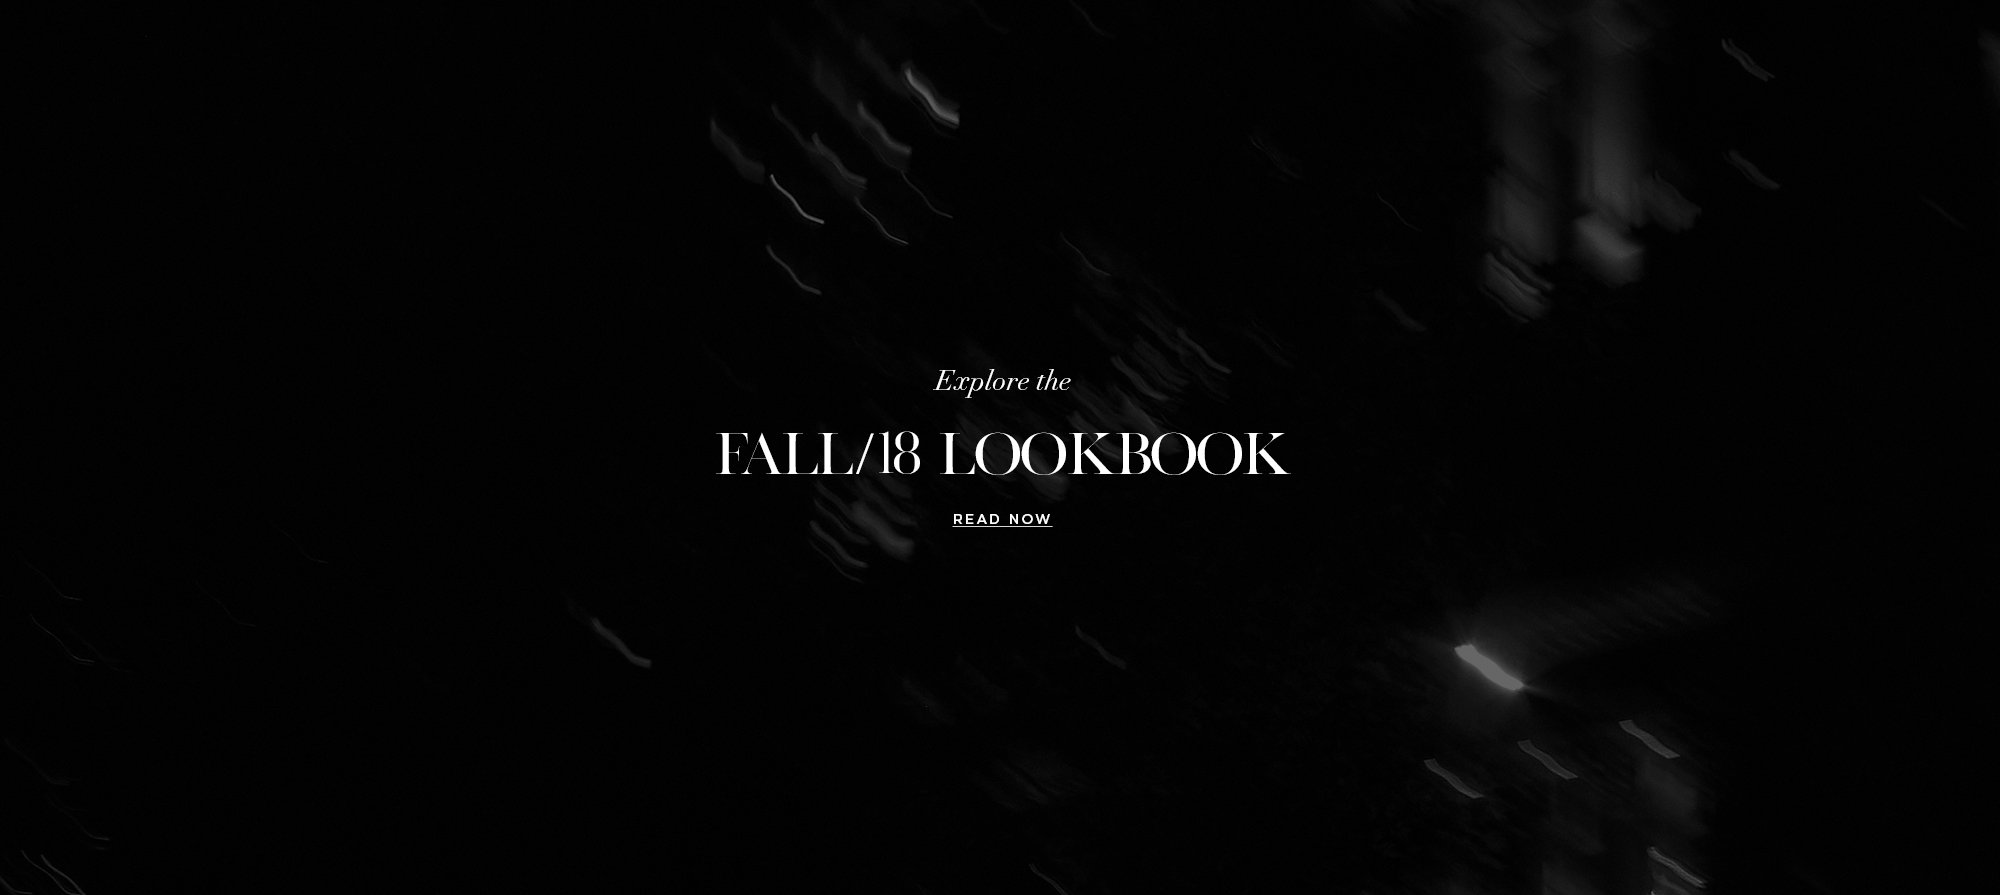 Explore the FALL/18 LOOKBOOK